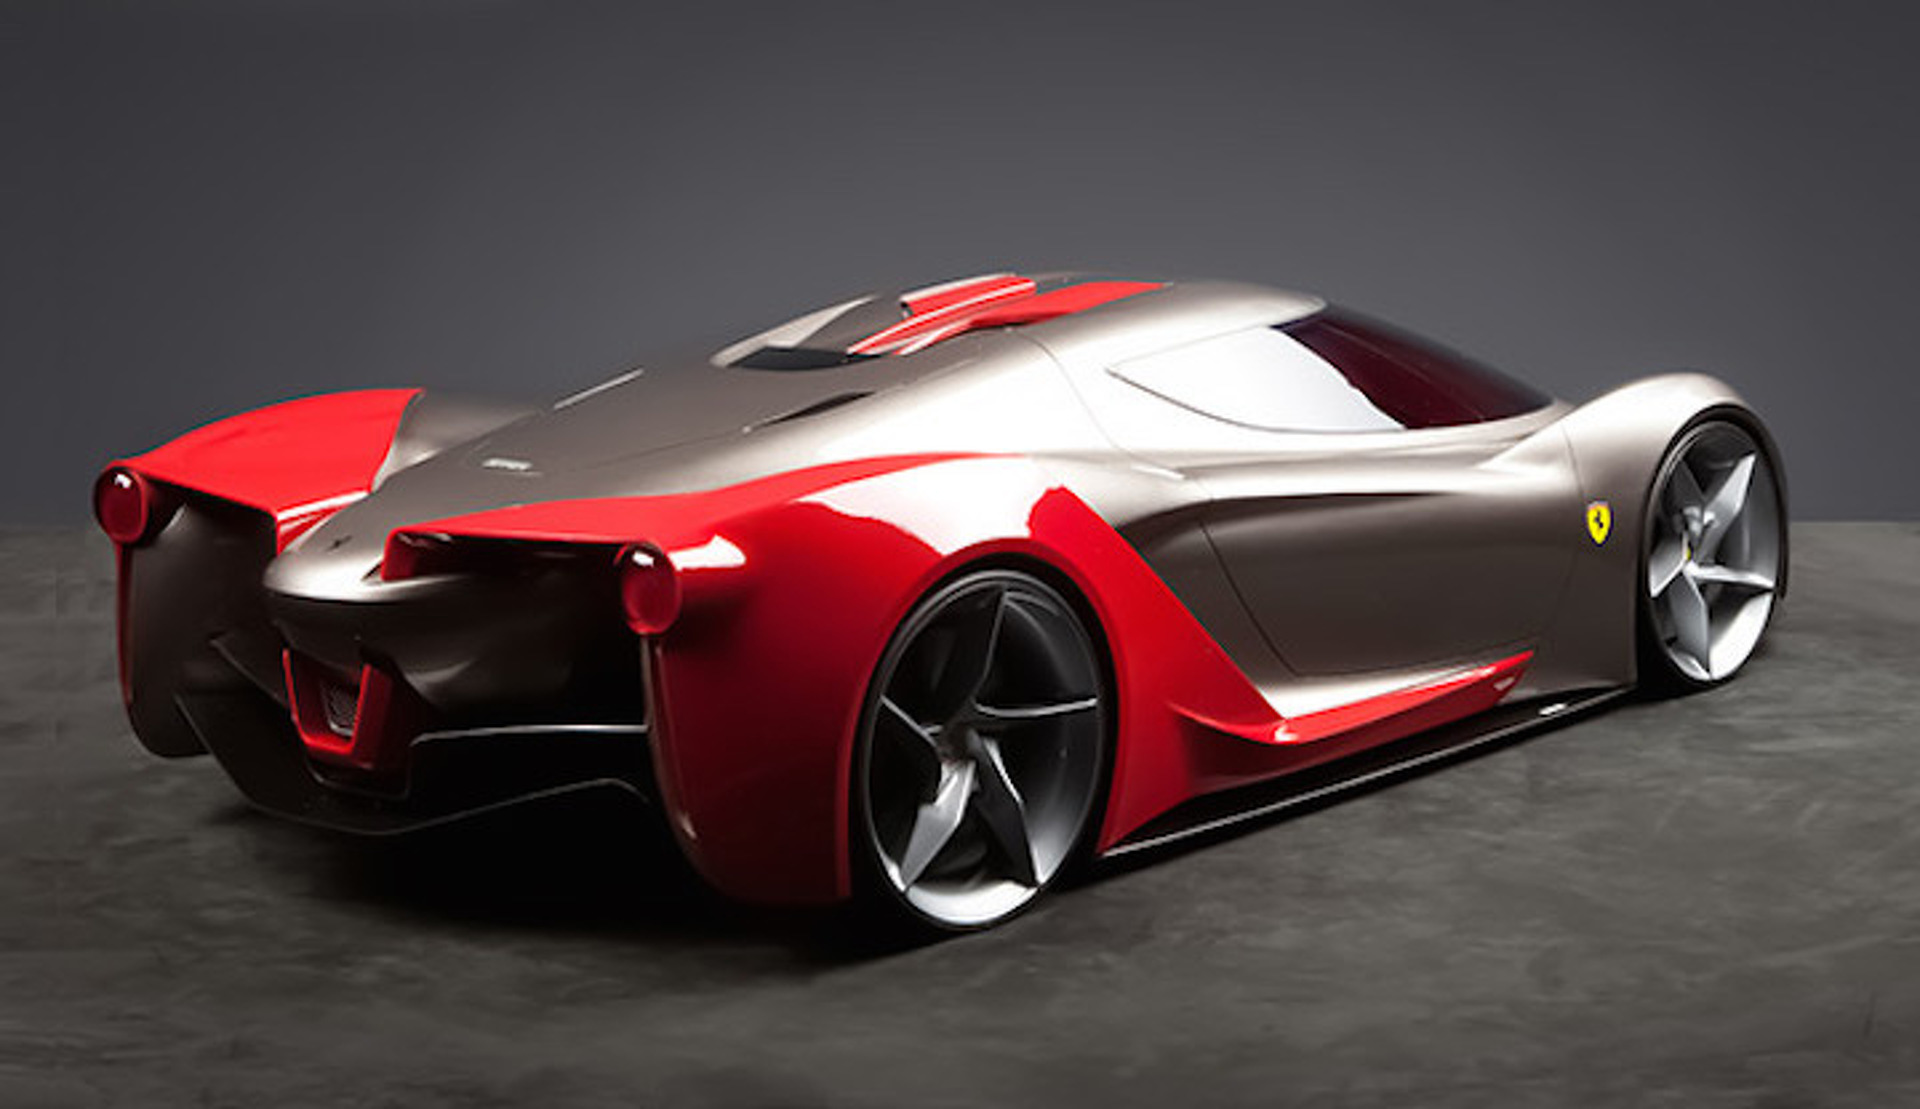 12 Ferrari Concept Cars That Could Preview The Future Of The Brand 1181148